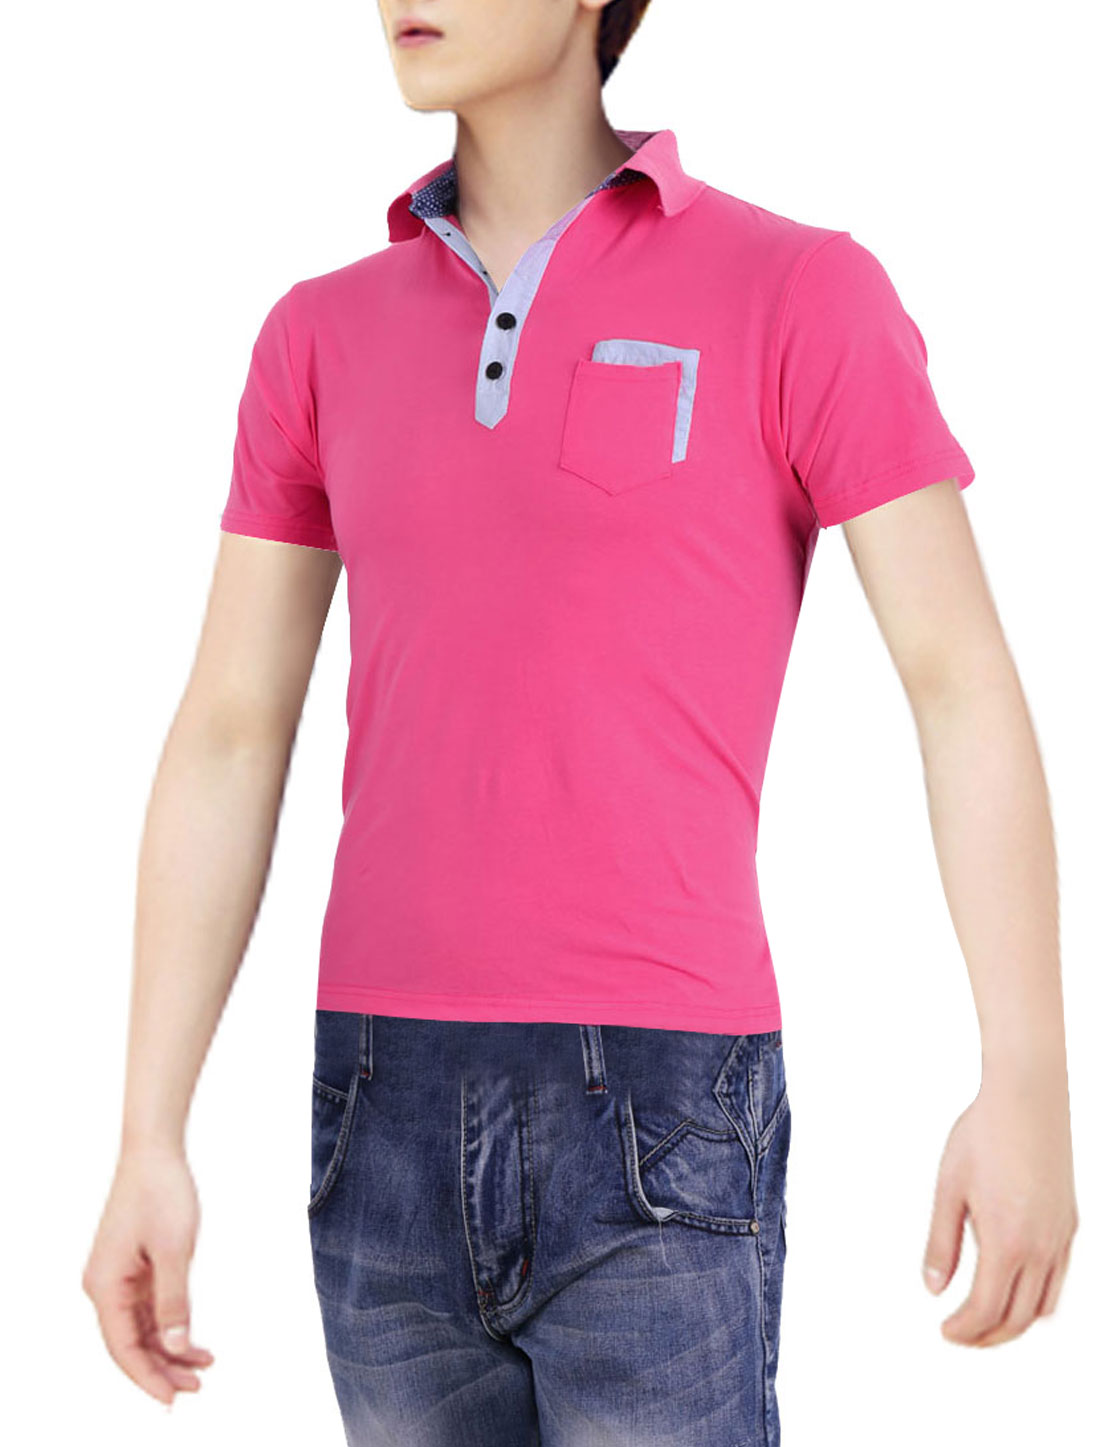 Men Point Collar Short Sleeve Chest Pocket Polo Shirt Deep Pink S